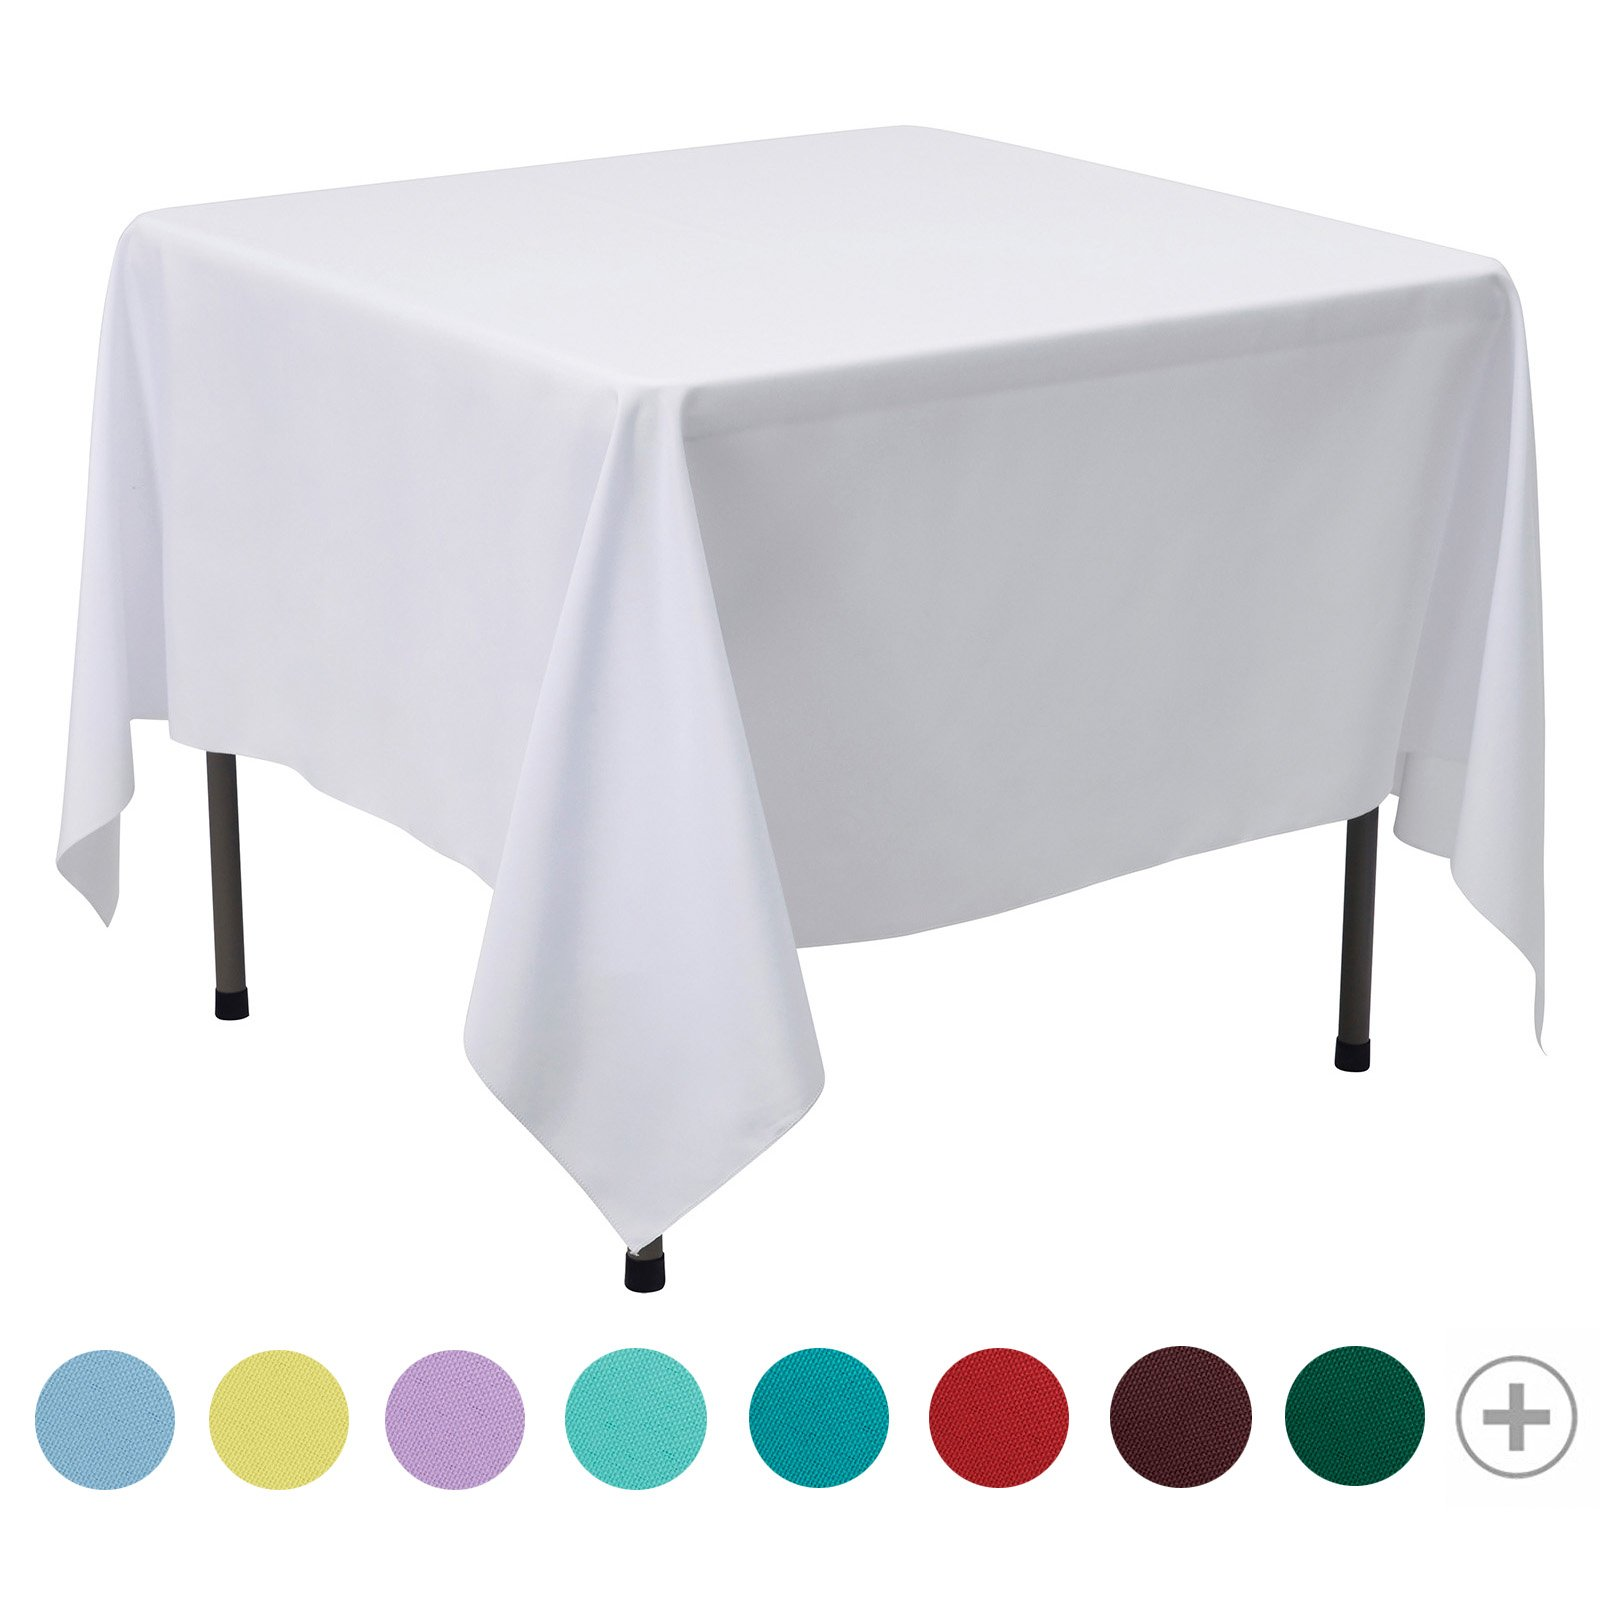 VEEYOO 85 inch Square Solid Polyester Tablecloth for Wedding Restaurant Party Coffee Shop Picnic Christmas, White